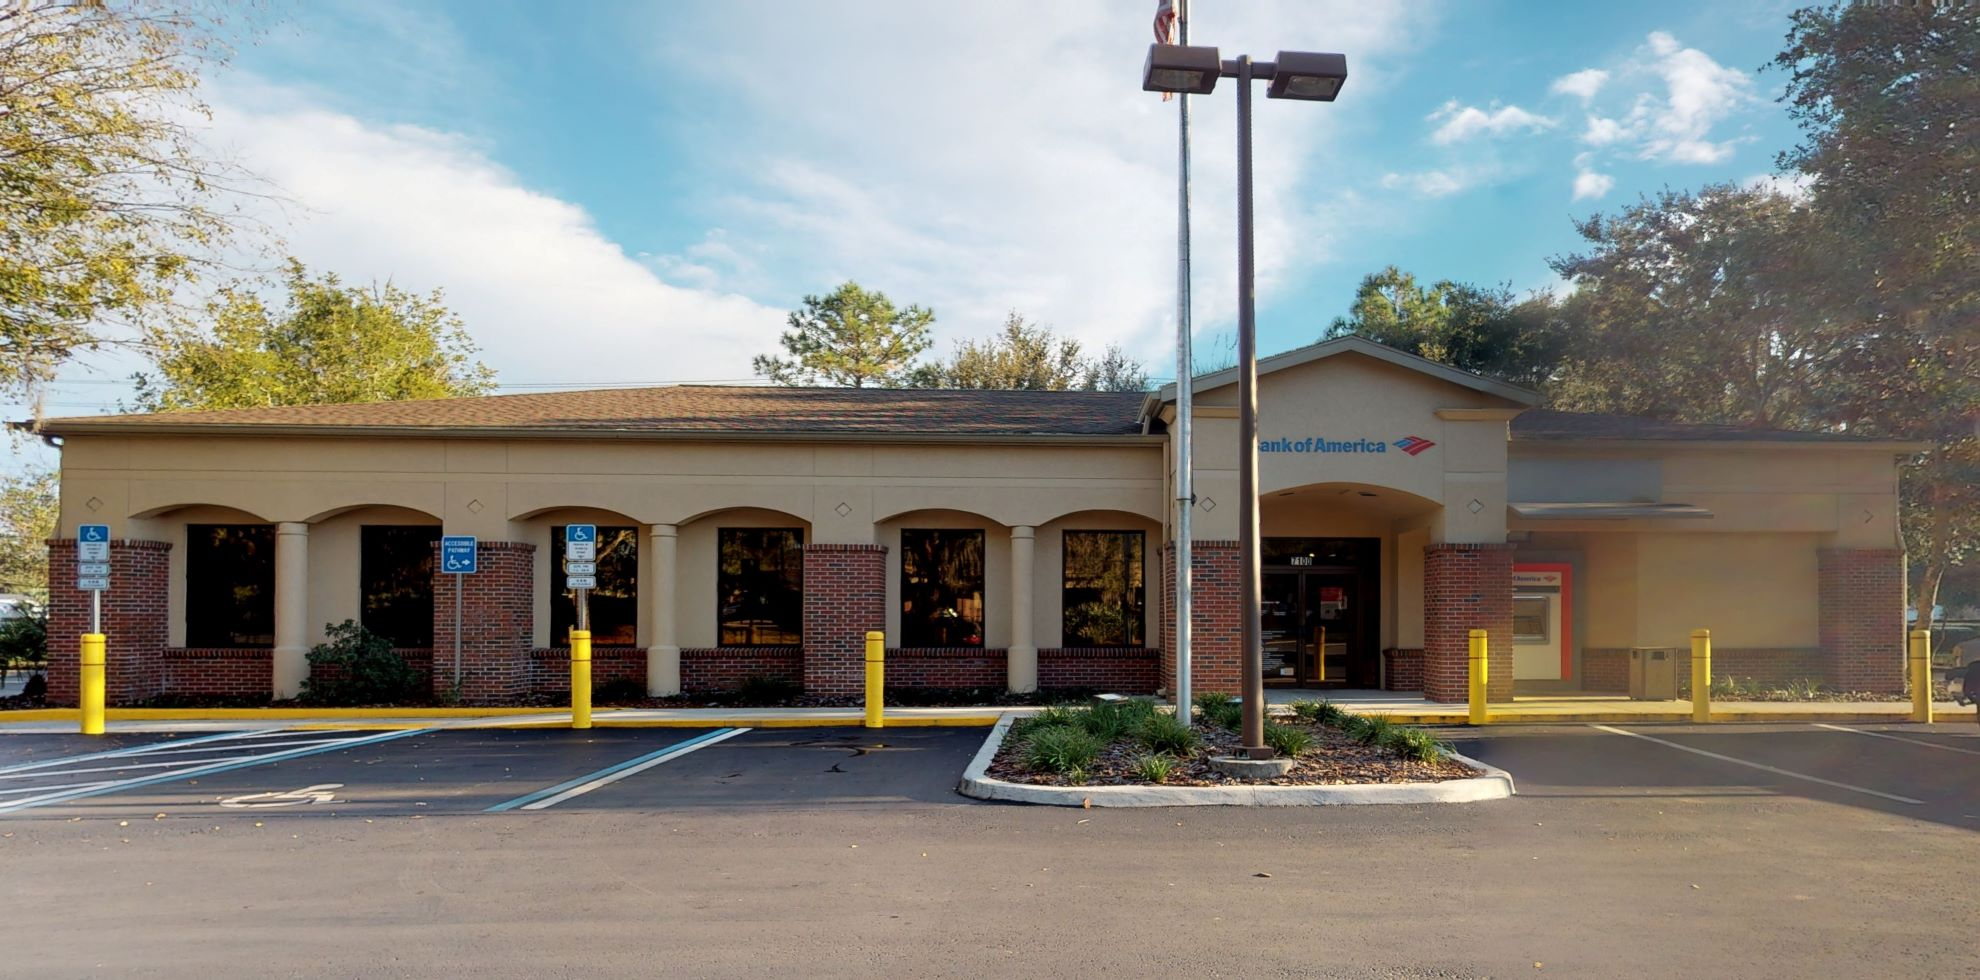 Bank of America financial center with drive-thru ATM   7100 SW Archer Rd, Gainesville, FL 32608